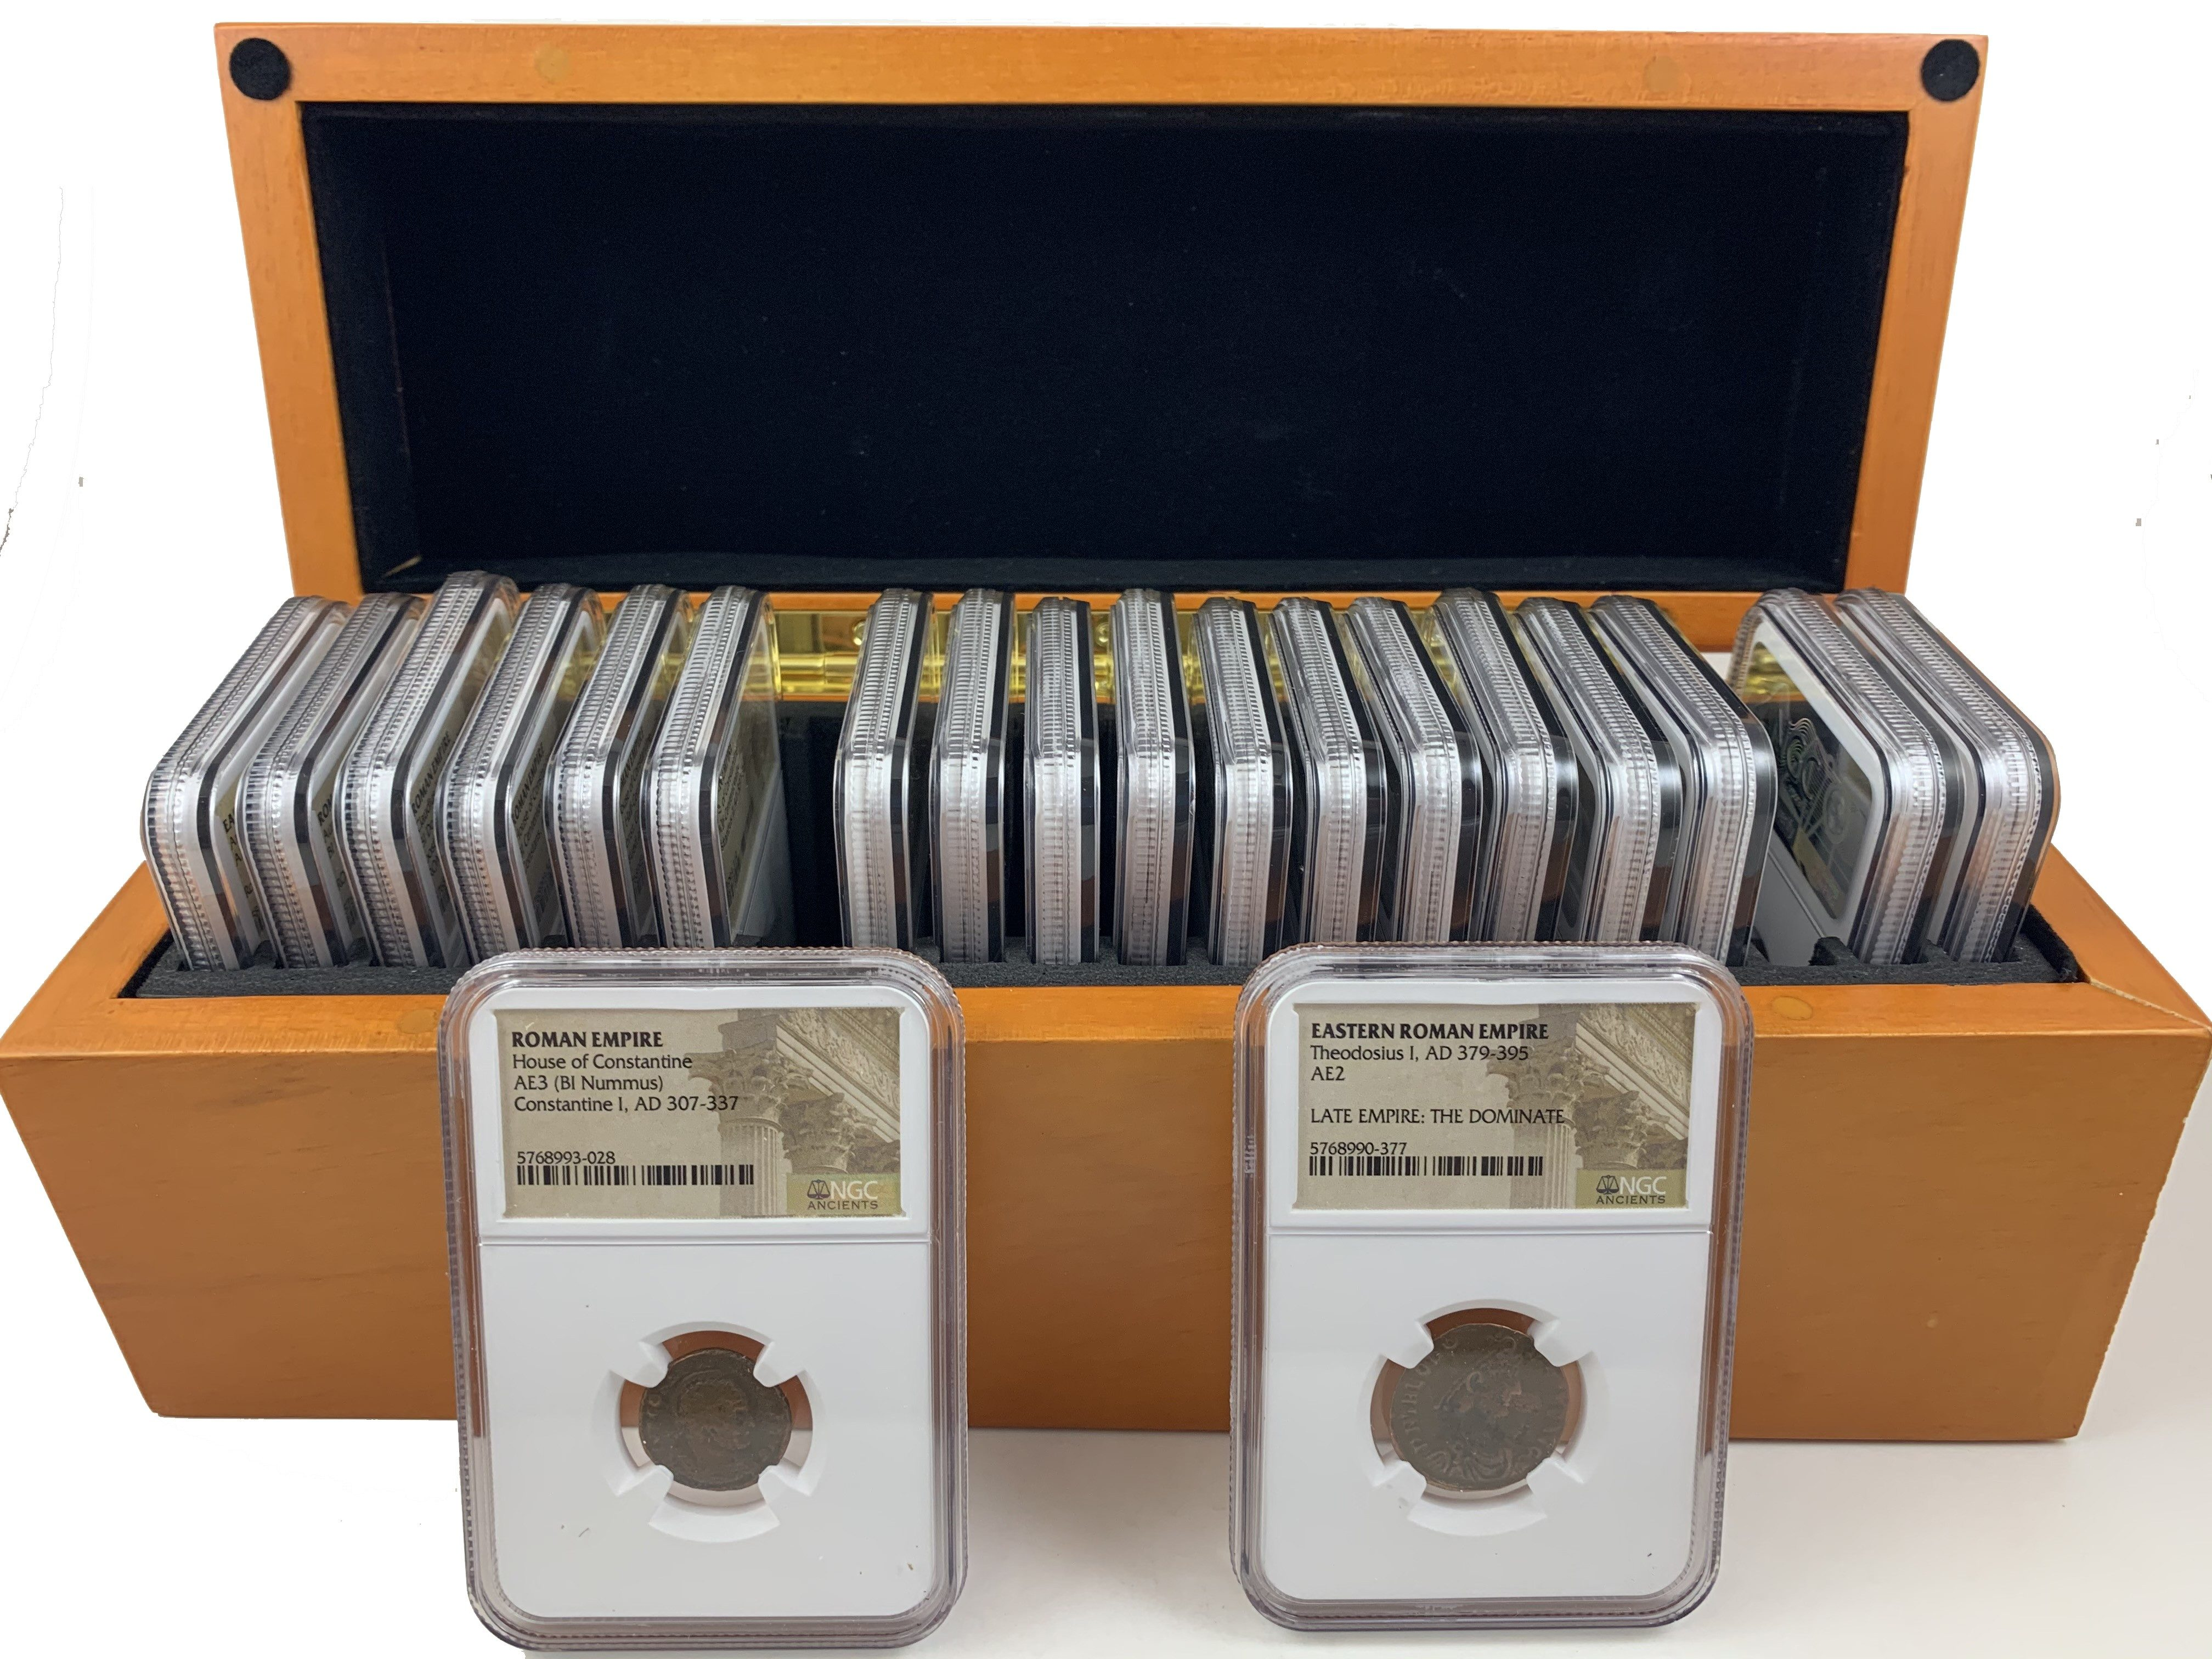 20 Roman Emperors, in ungraded NGC slabs, in box LIMITED EDITION